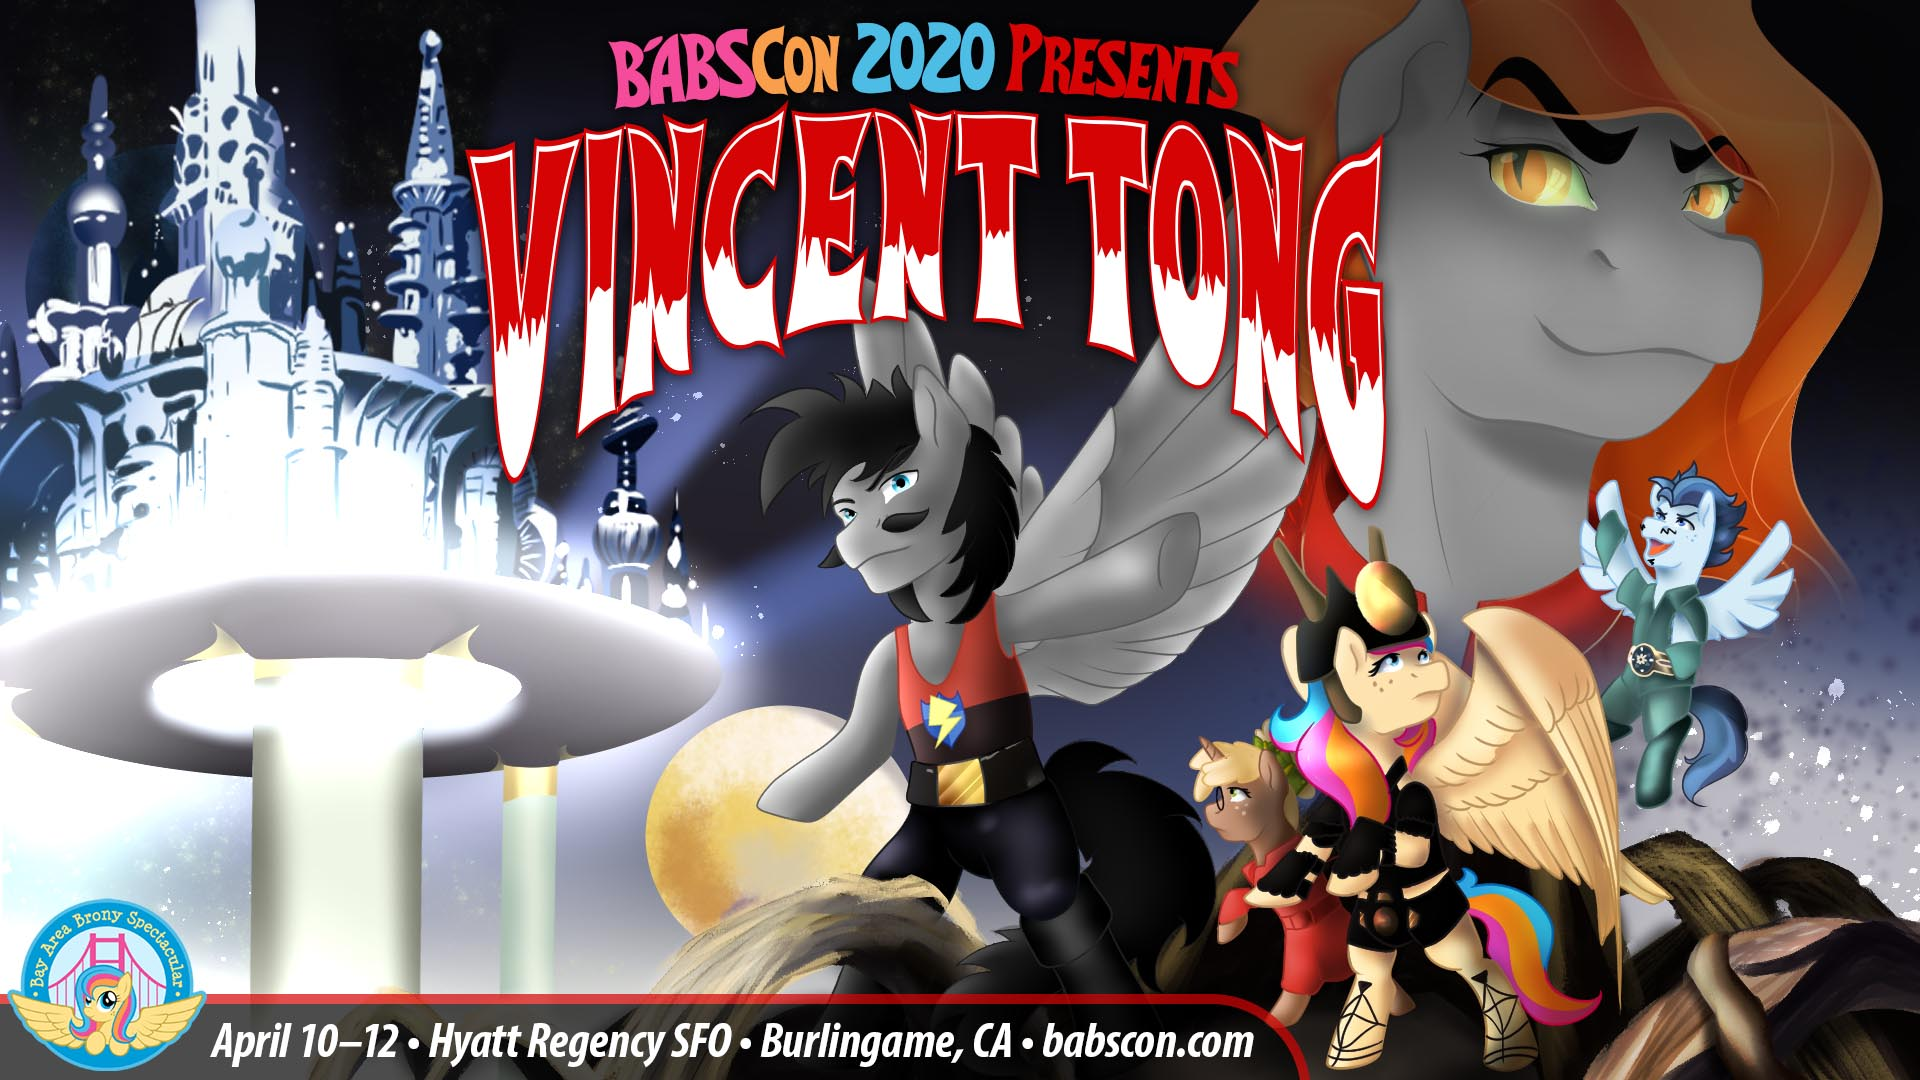 Vincent Tong Joins BABSCon 2020 in a Flash